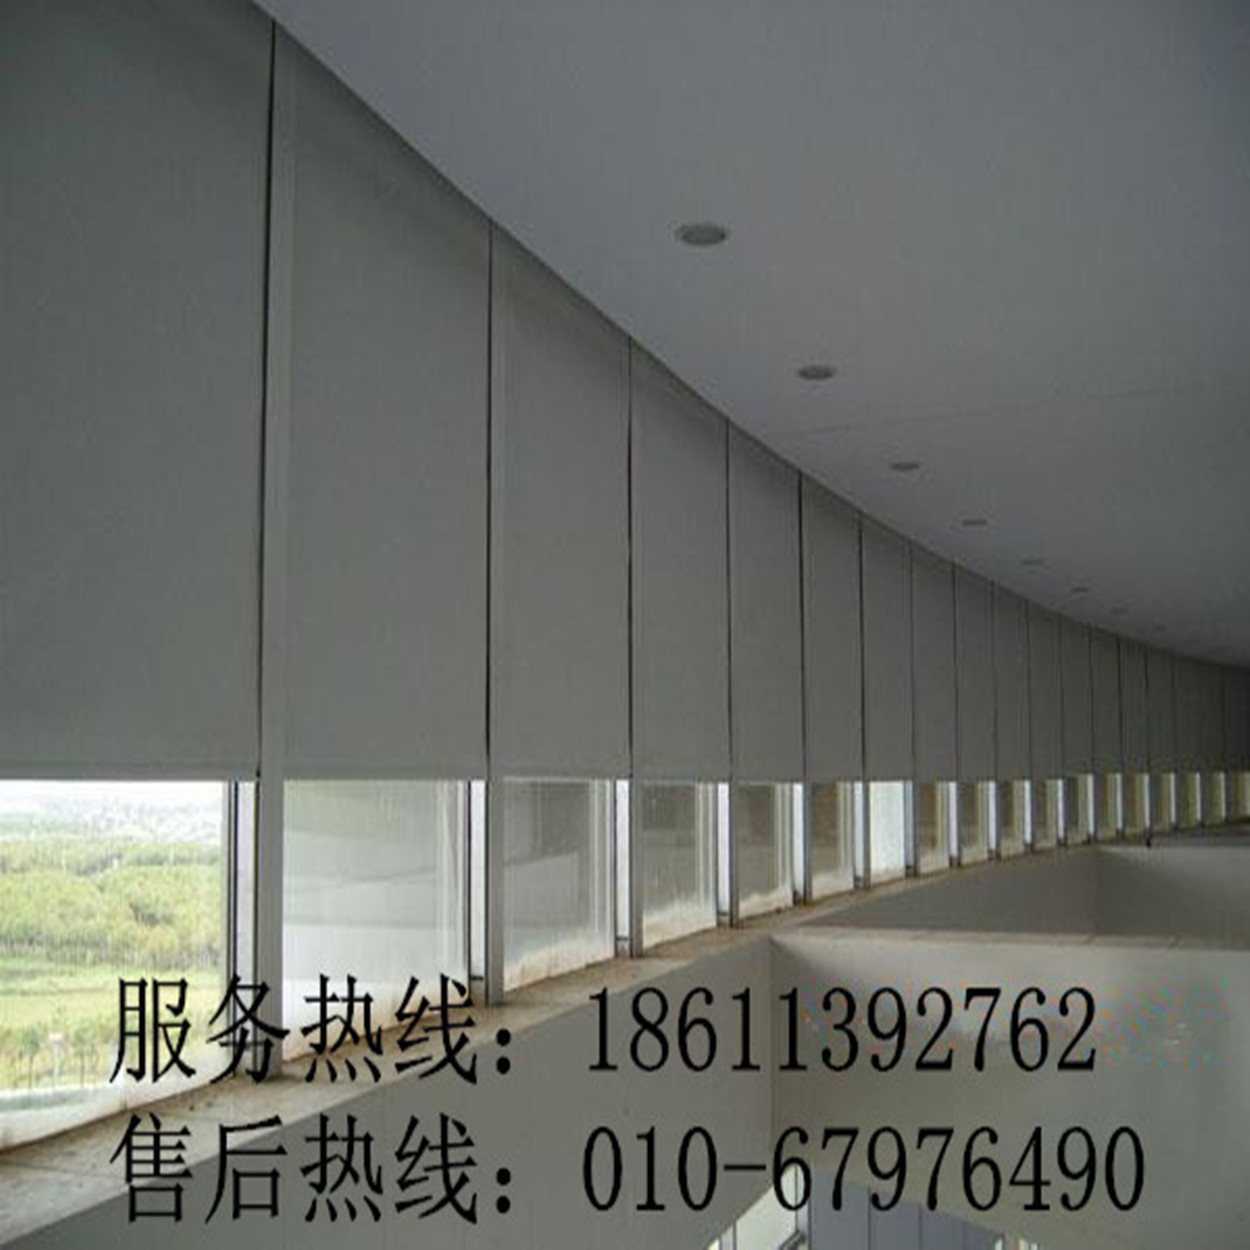 Waterproof Blackout Office Project Rolling Shutter Curtains Custom Pearl  White Shutter Can Be Used As A Projection Screen Using In Blinds, Shades U0026  Shutters ...